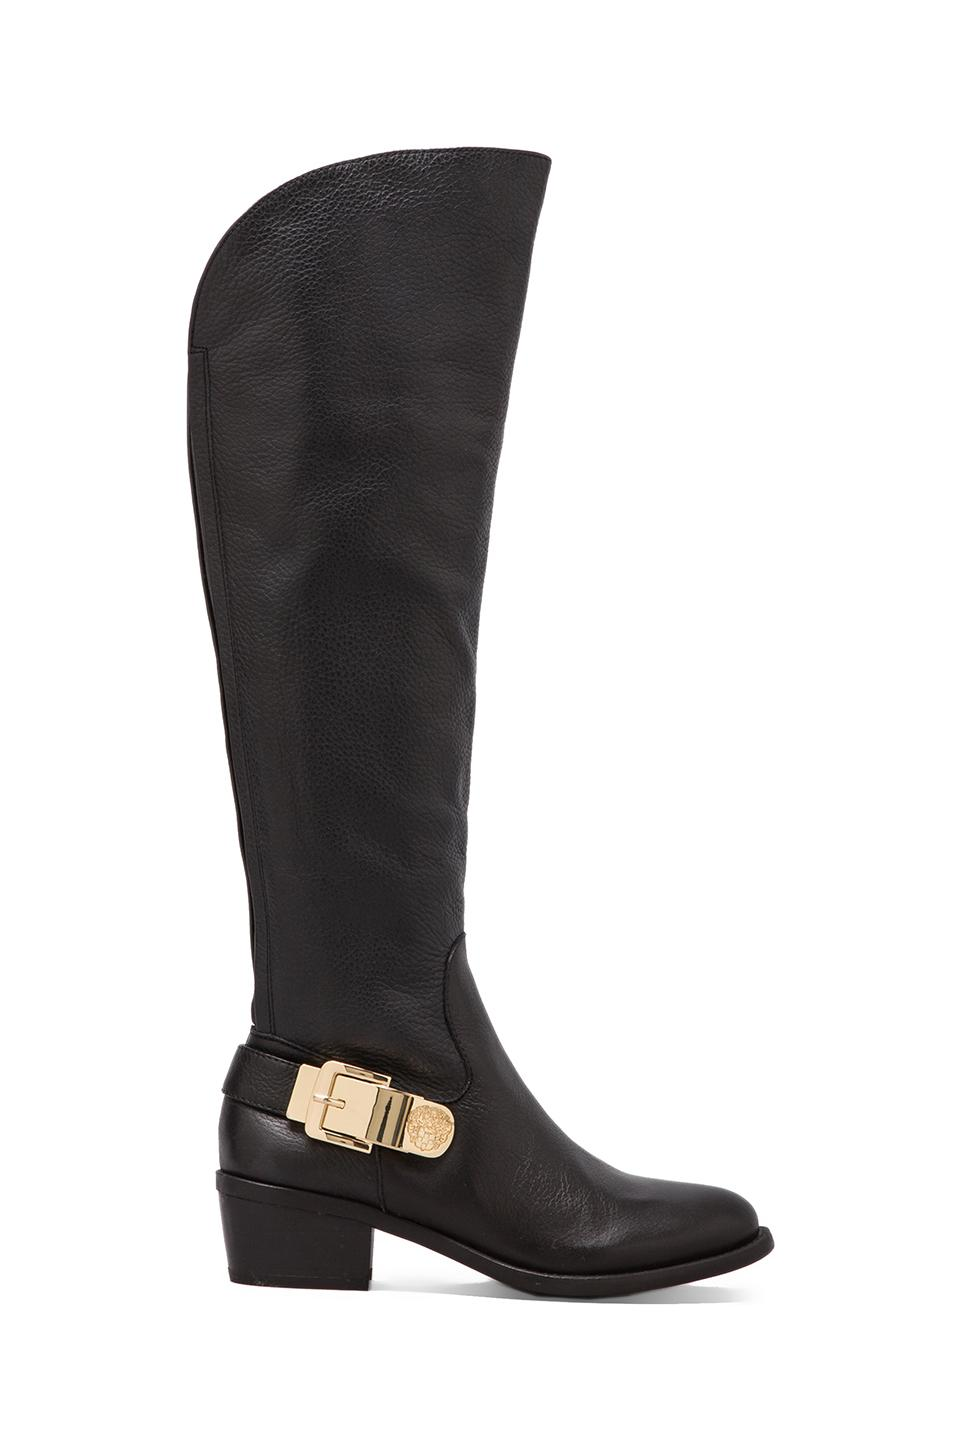 Vince Camuto Bedina Boot in Black